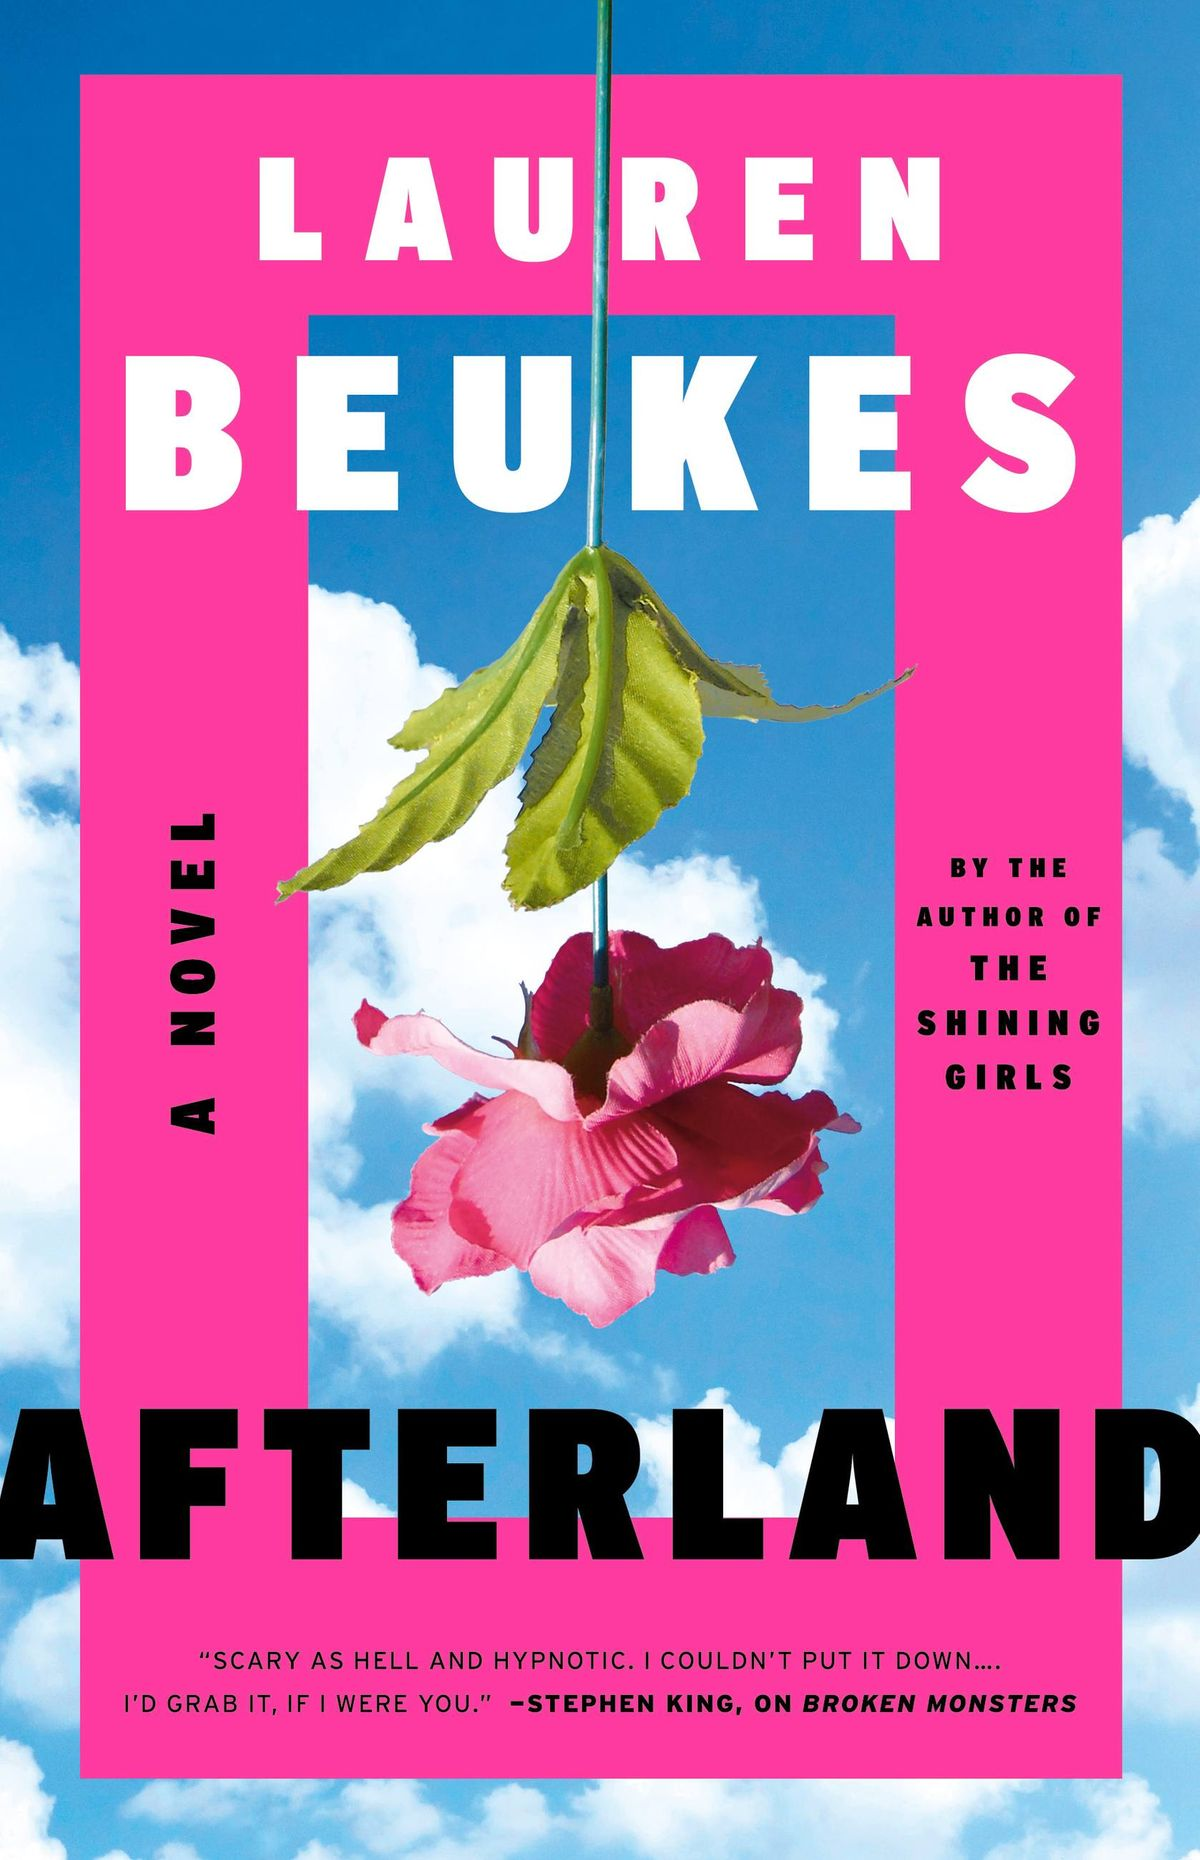 Afterland by Lauren Beukes